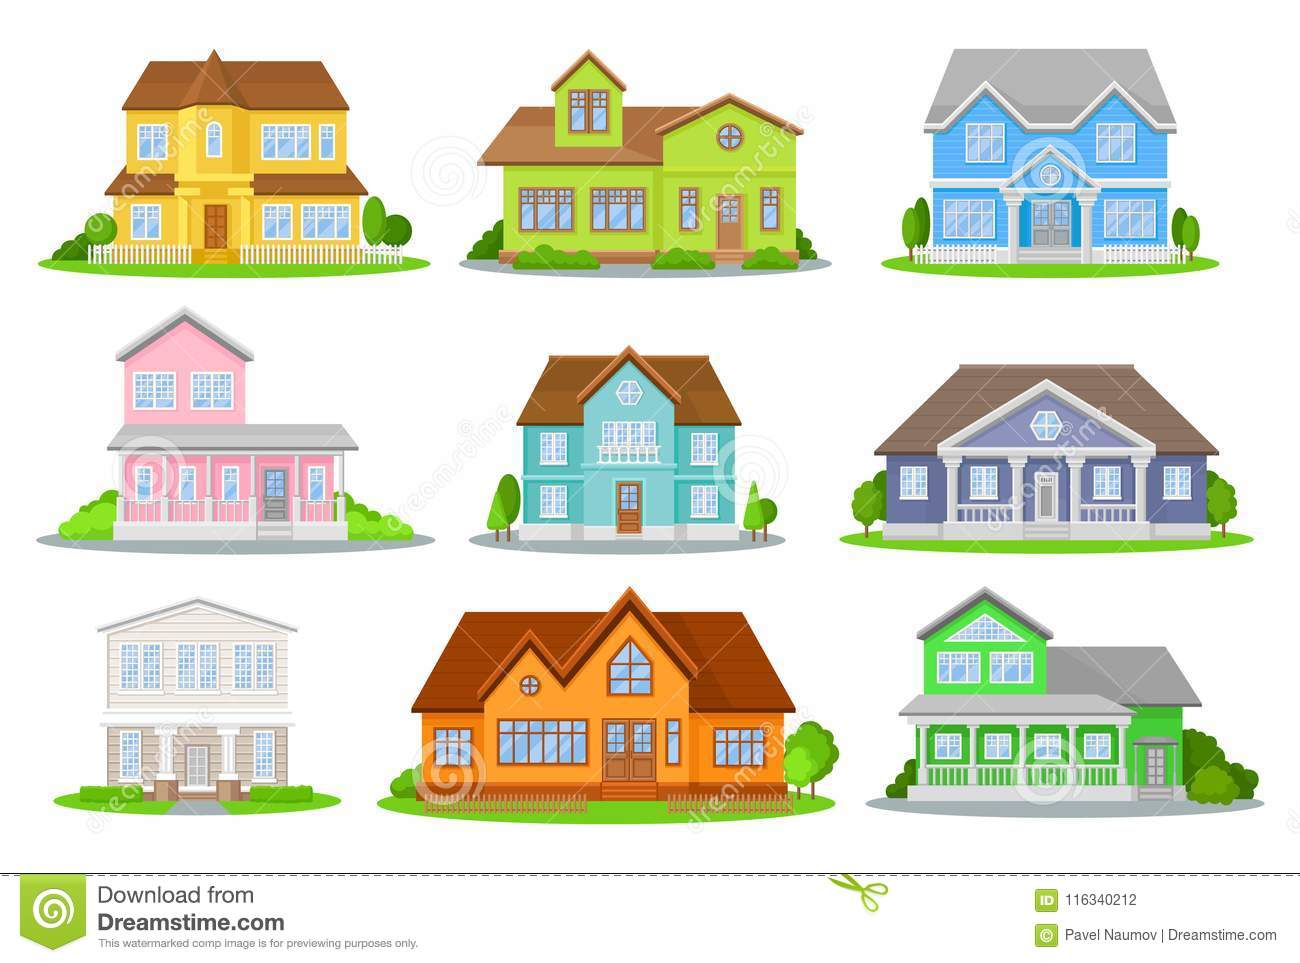 Flat vector set of colorful houses with green meadow, bushes and trees. Cozy residential cottages. Traditional